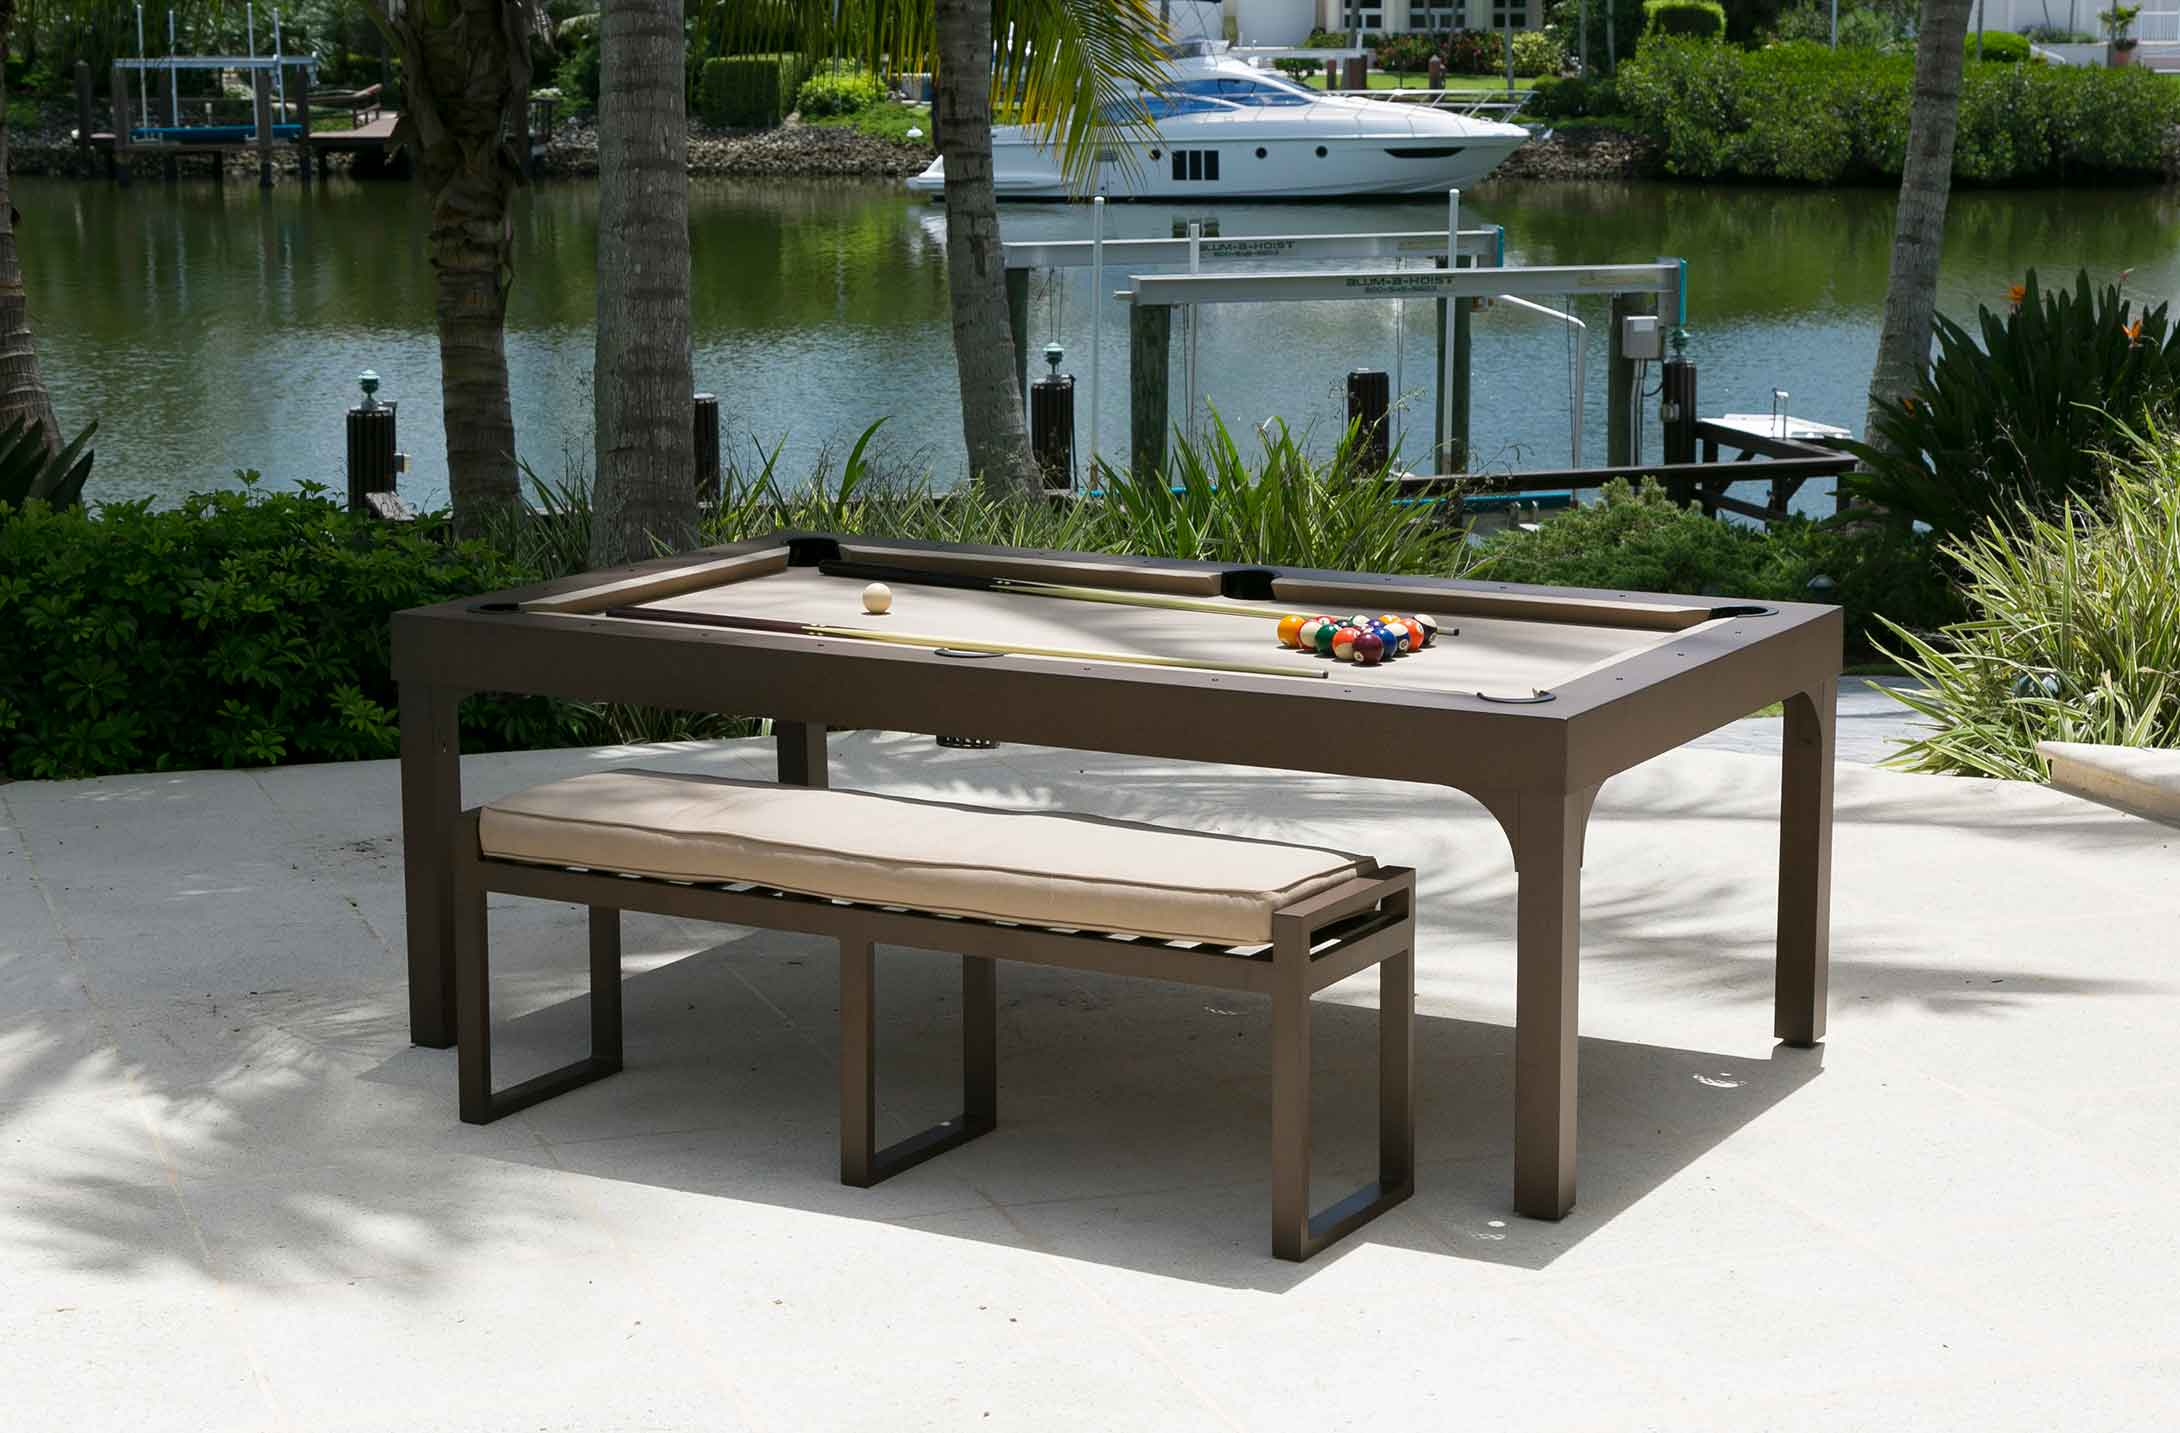 Balcony Outdoor Pool Table Outdoor Games